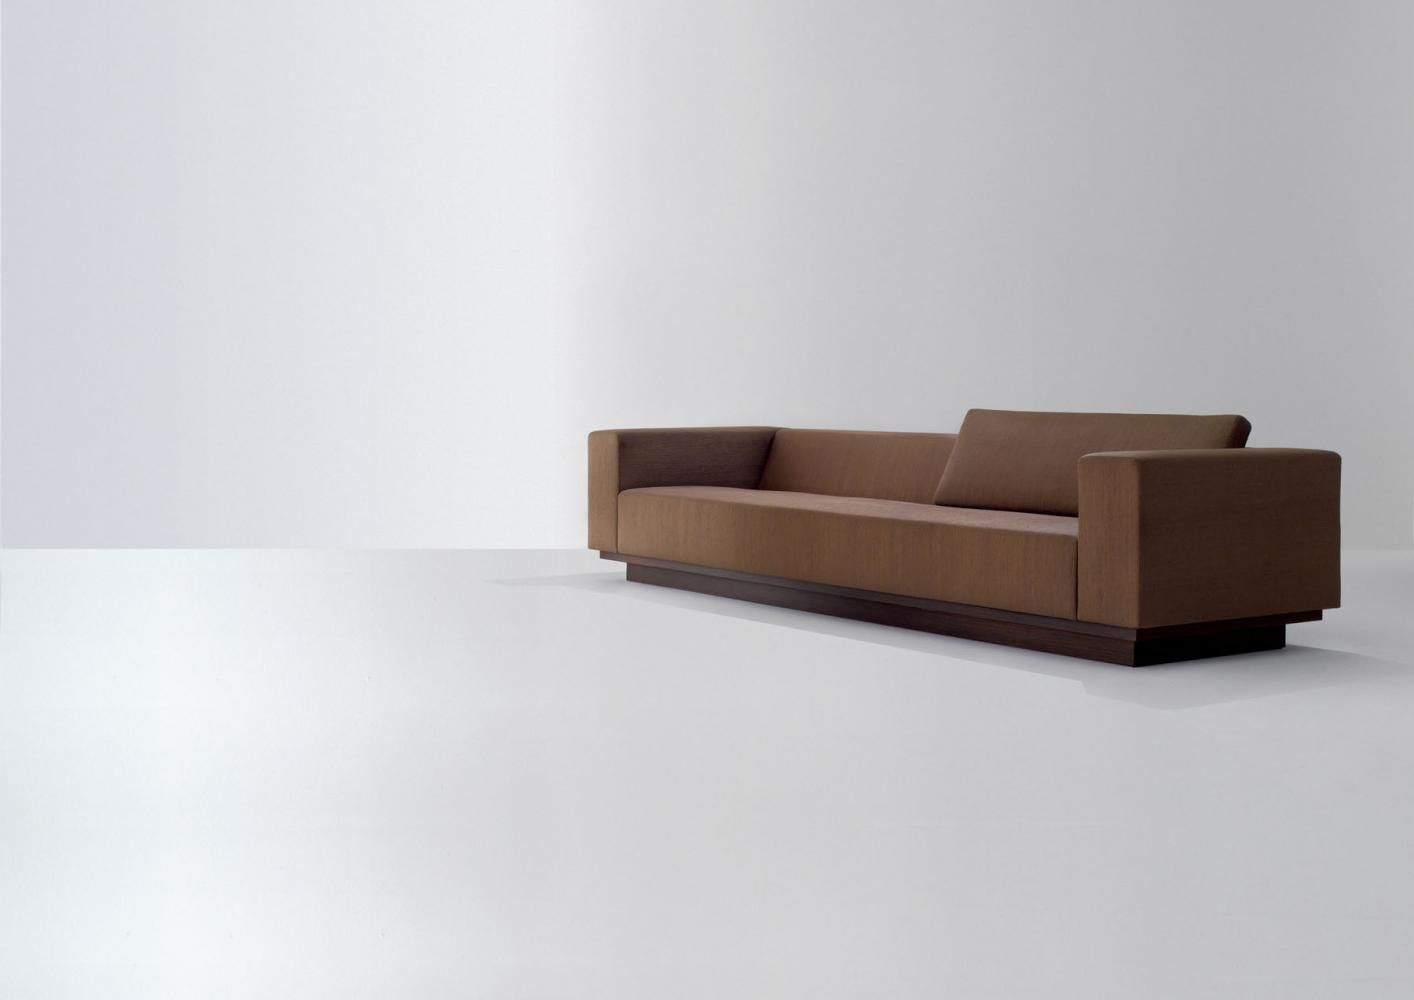 The Elgant Design And The Carefully Selected Leathers And Fabrics Make  Orchestra System A Unique Sofa, Perfect For Refined Public Spaces.